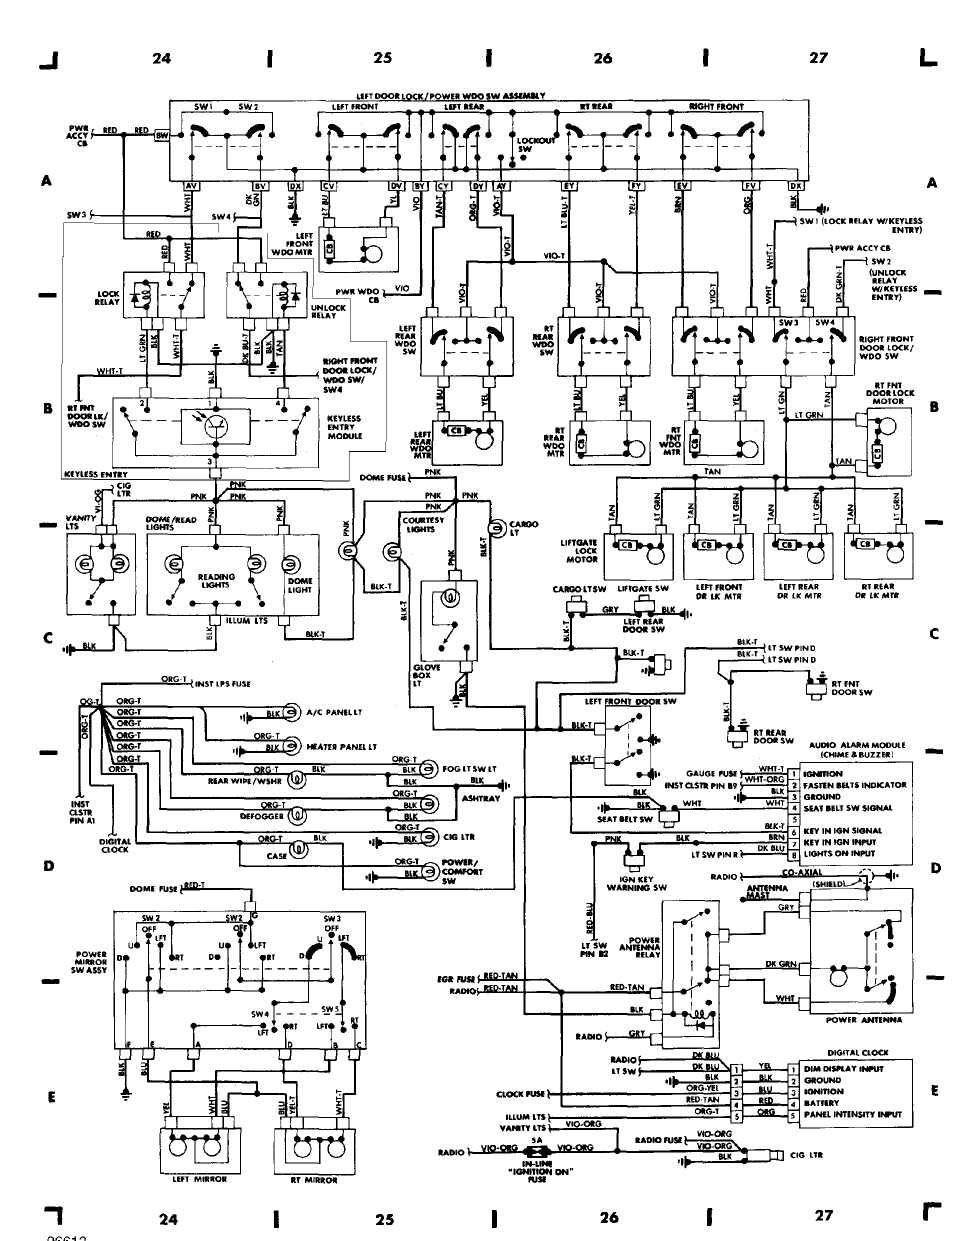 wiring_diagrams_html_61f5e0ad wiring diagrams 1984 1991 jeep cherokee (xj) jeep 89 jeep wrangler radio wiring diagram at crackthecode.co